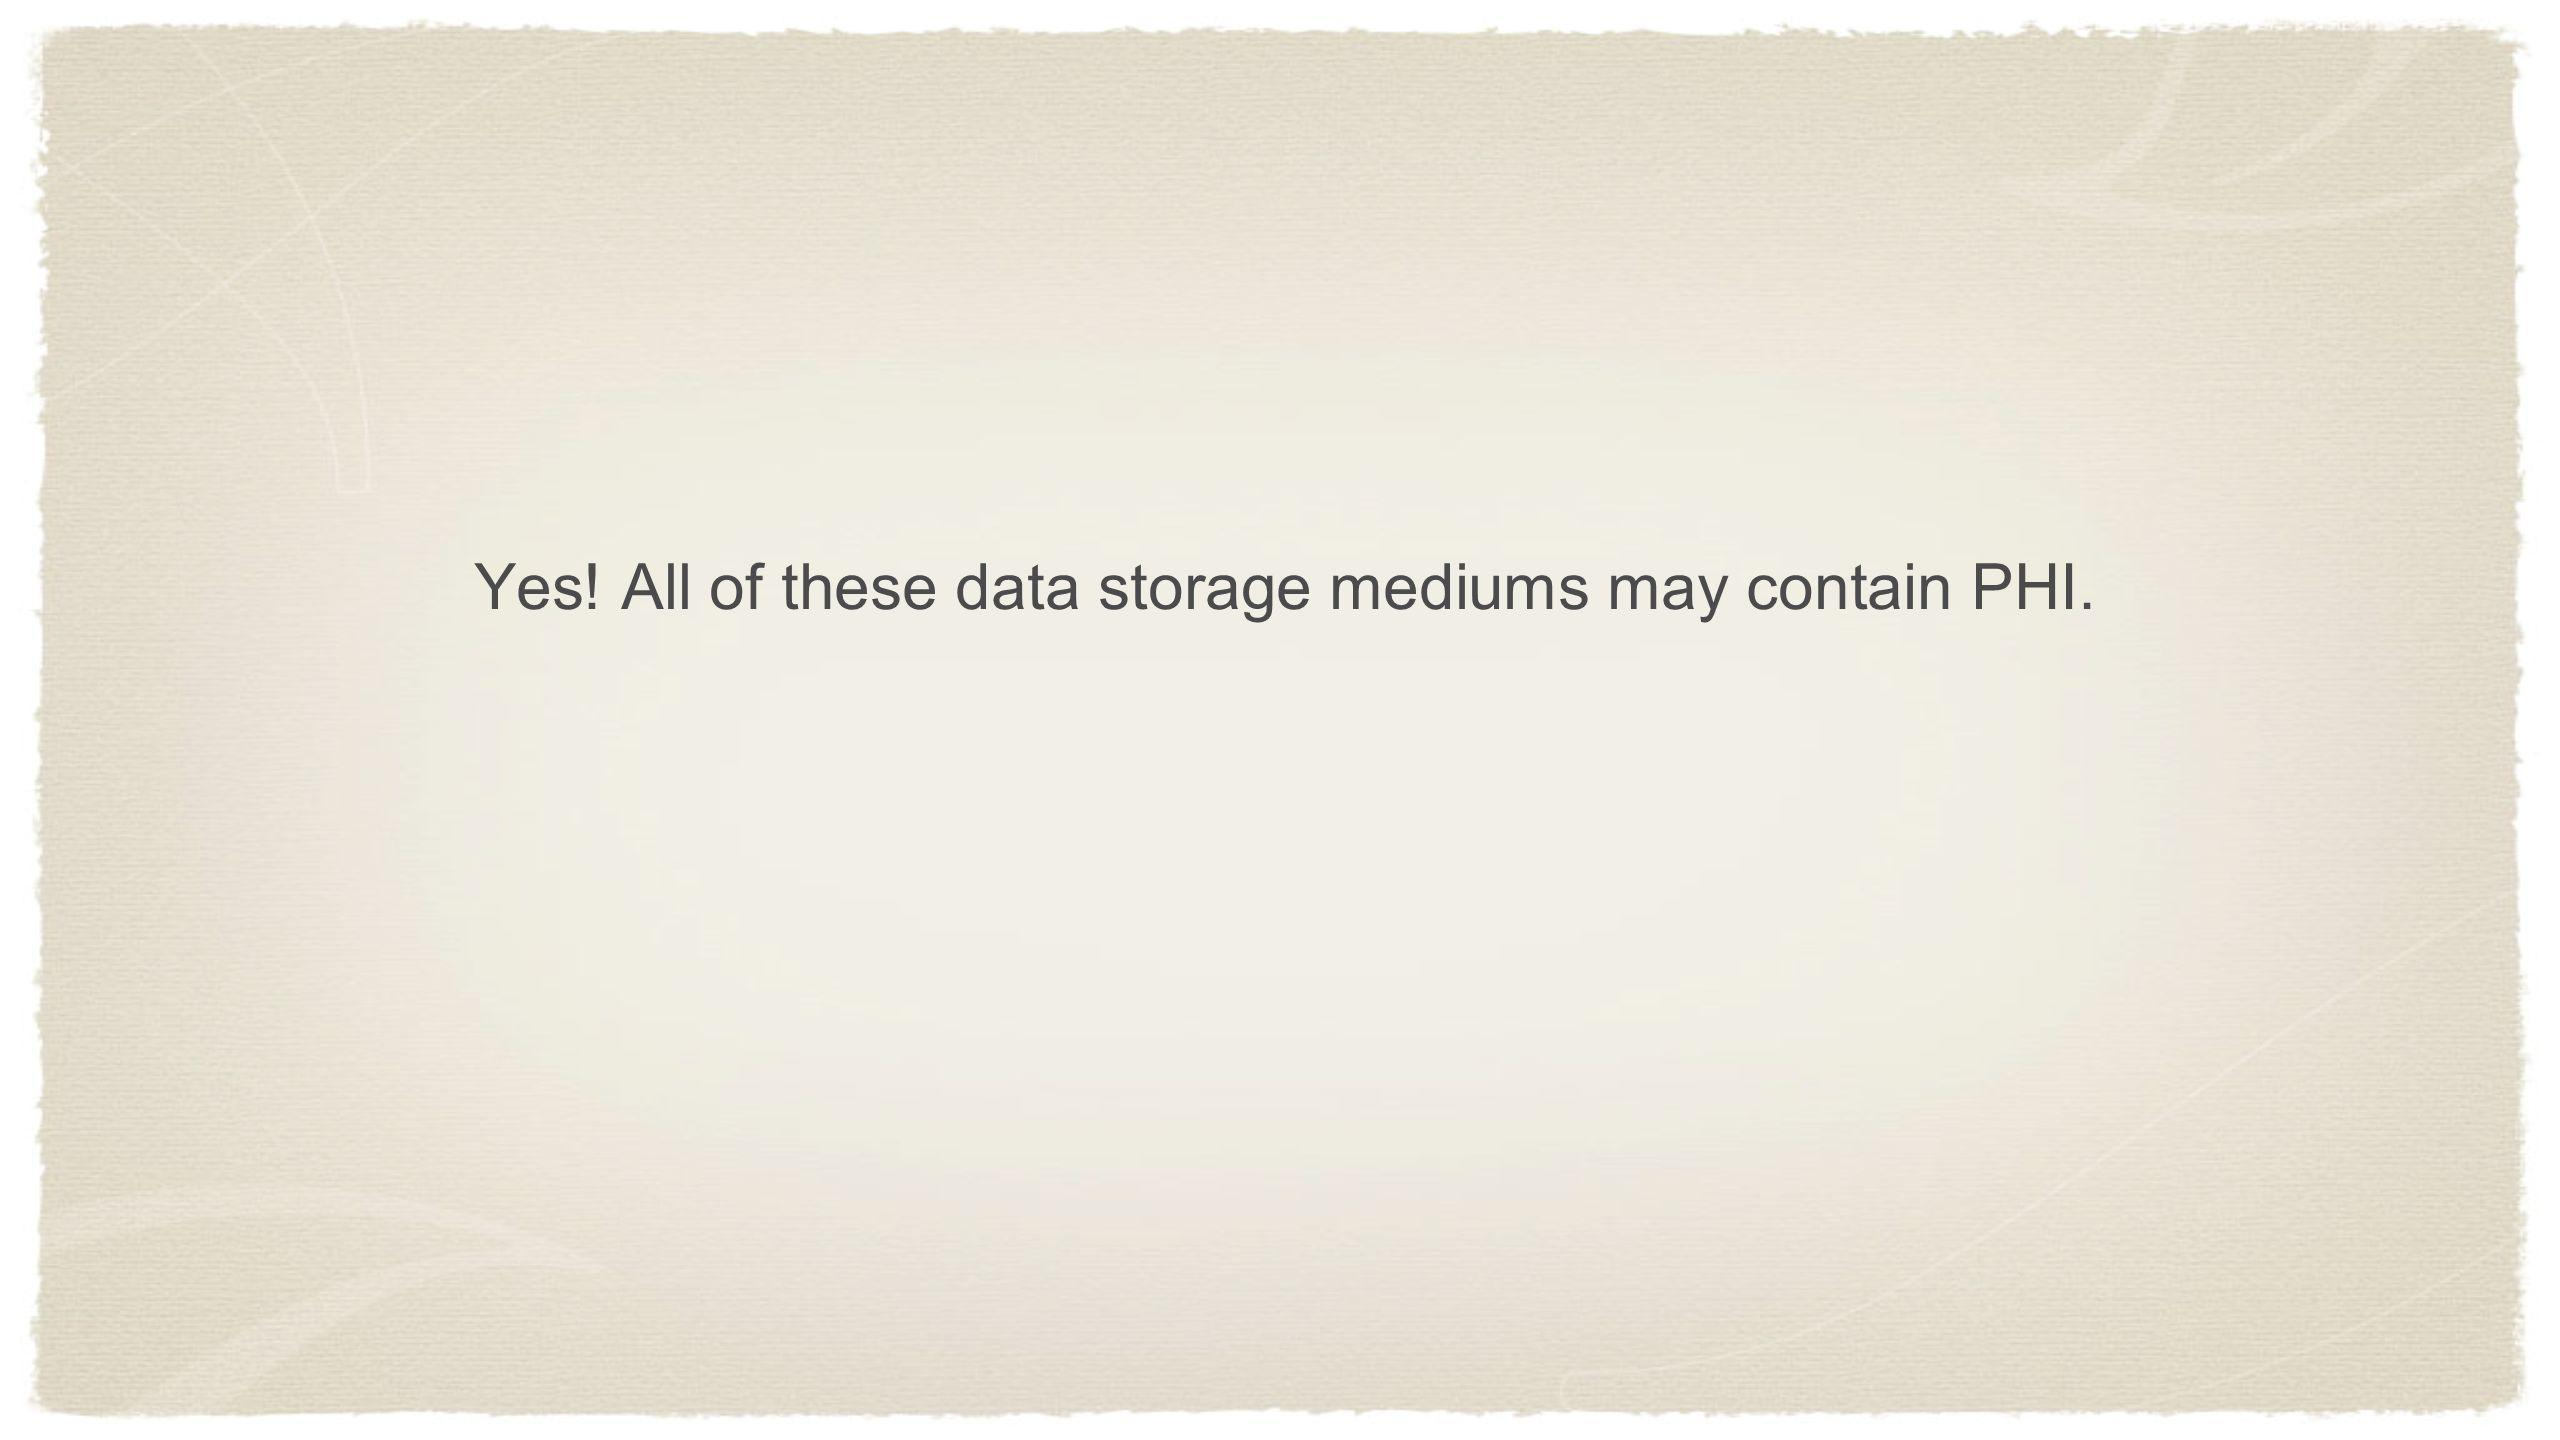 Yes! All of these data storage mediums may contain PHI.